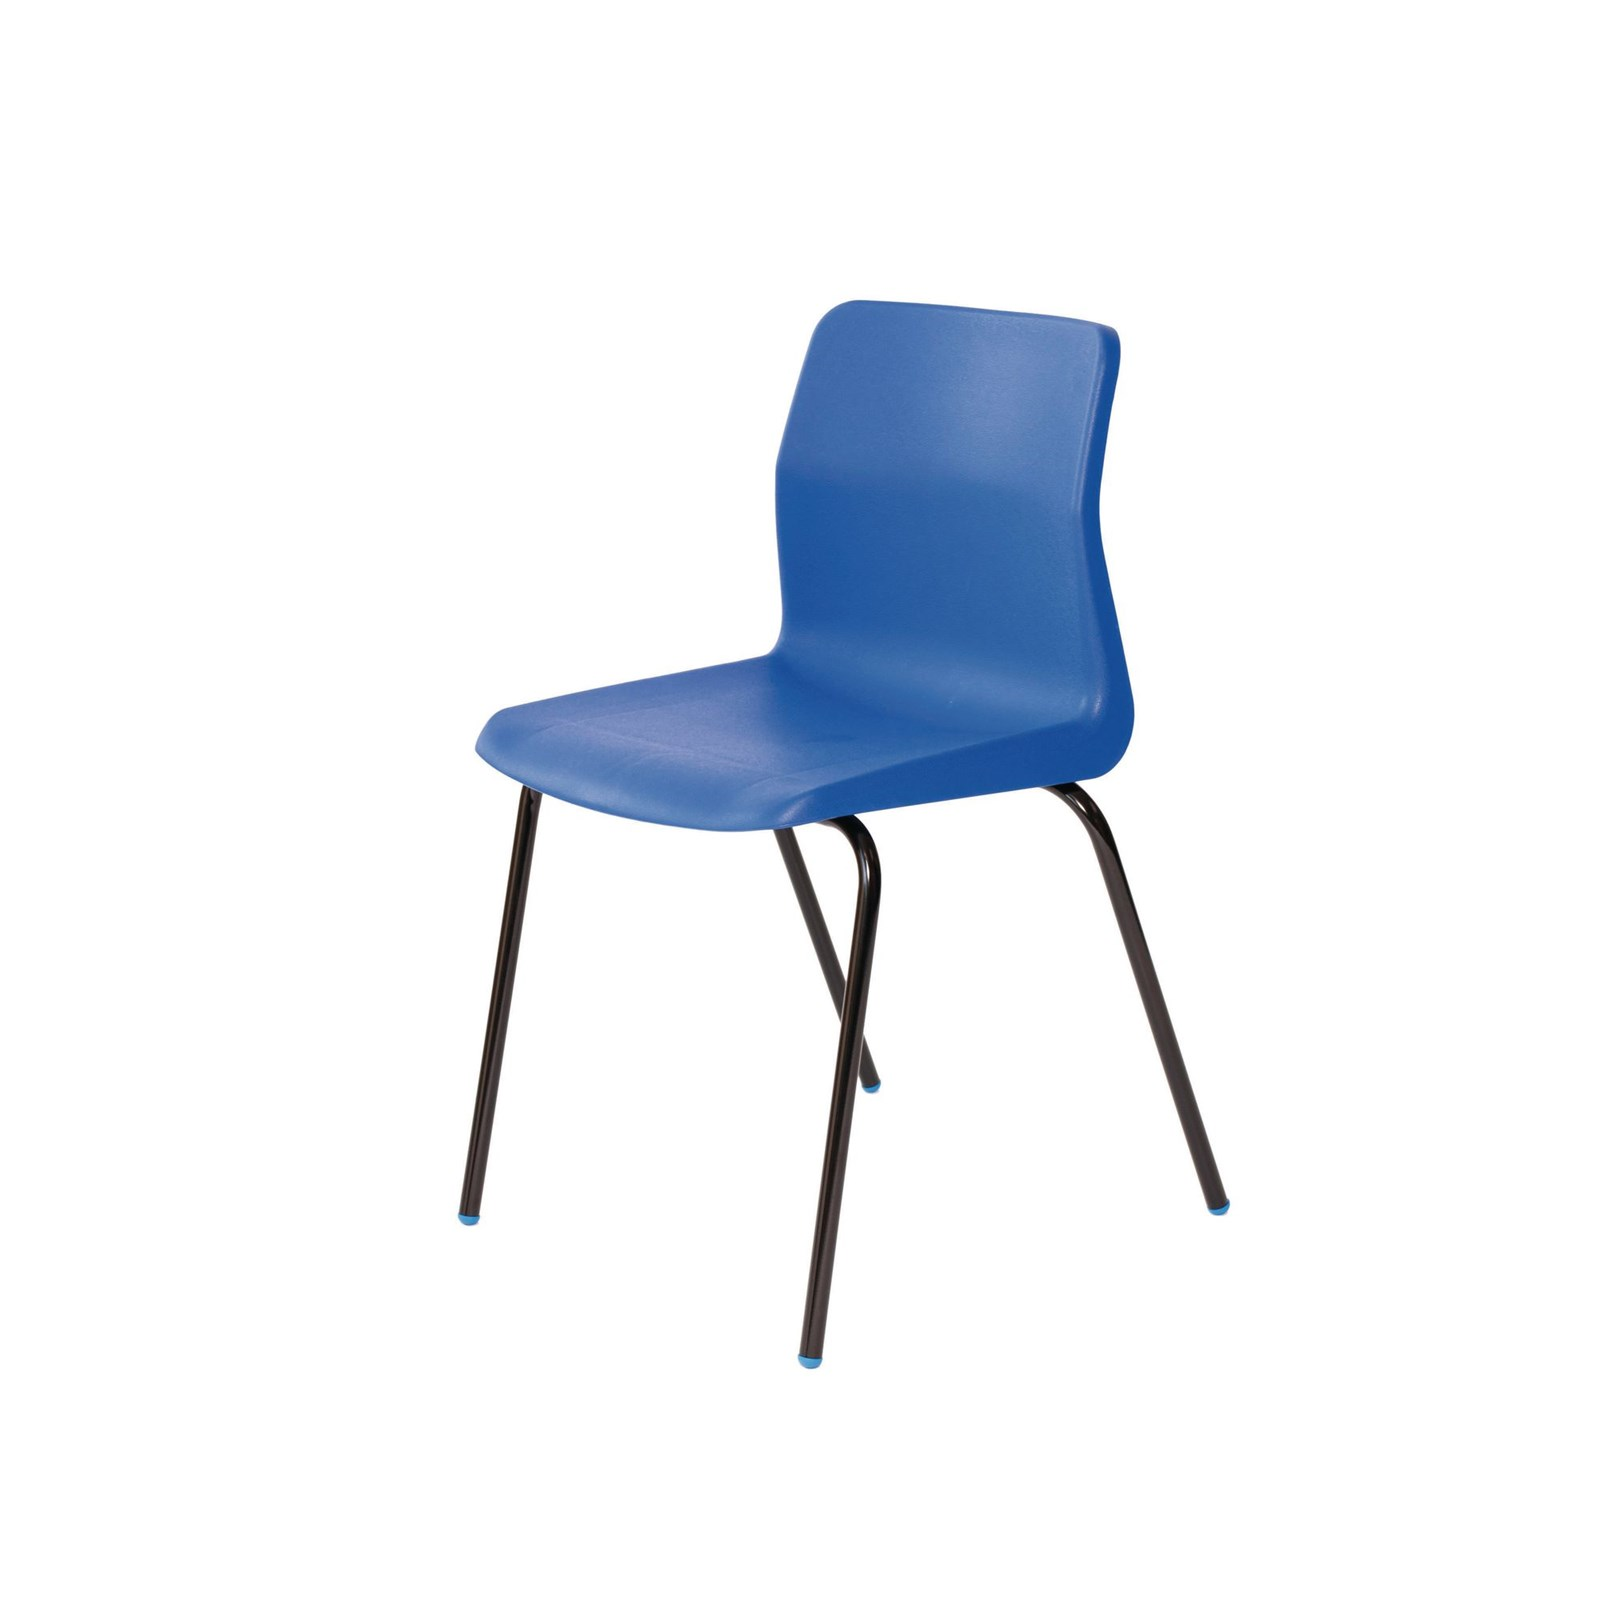 P6 Chair 260mm Blk Frm Blu